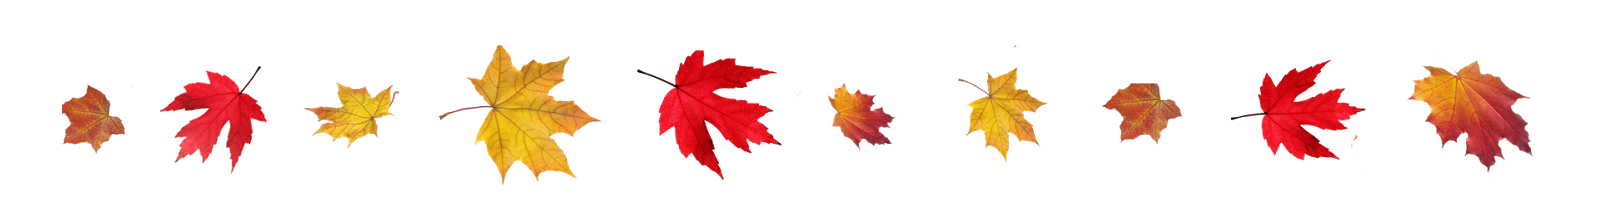 Transparent-Fall-Leaves-Border.png